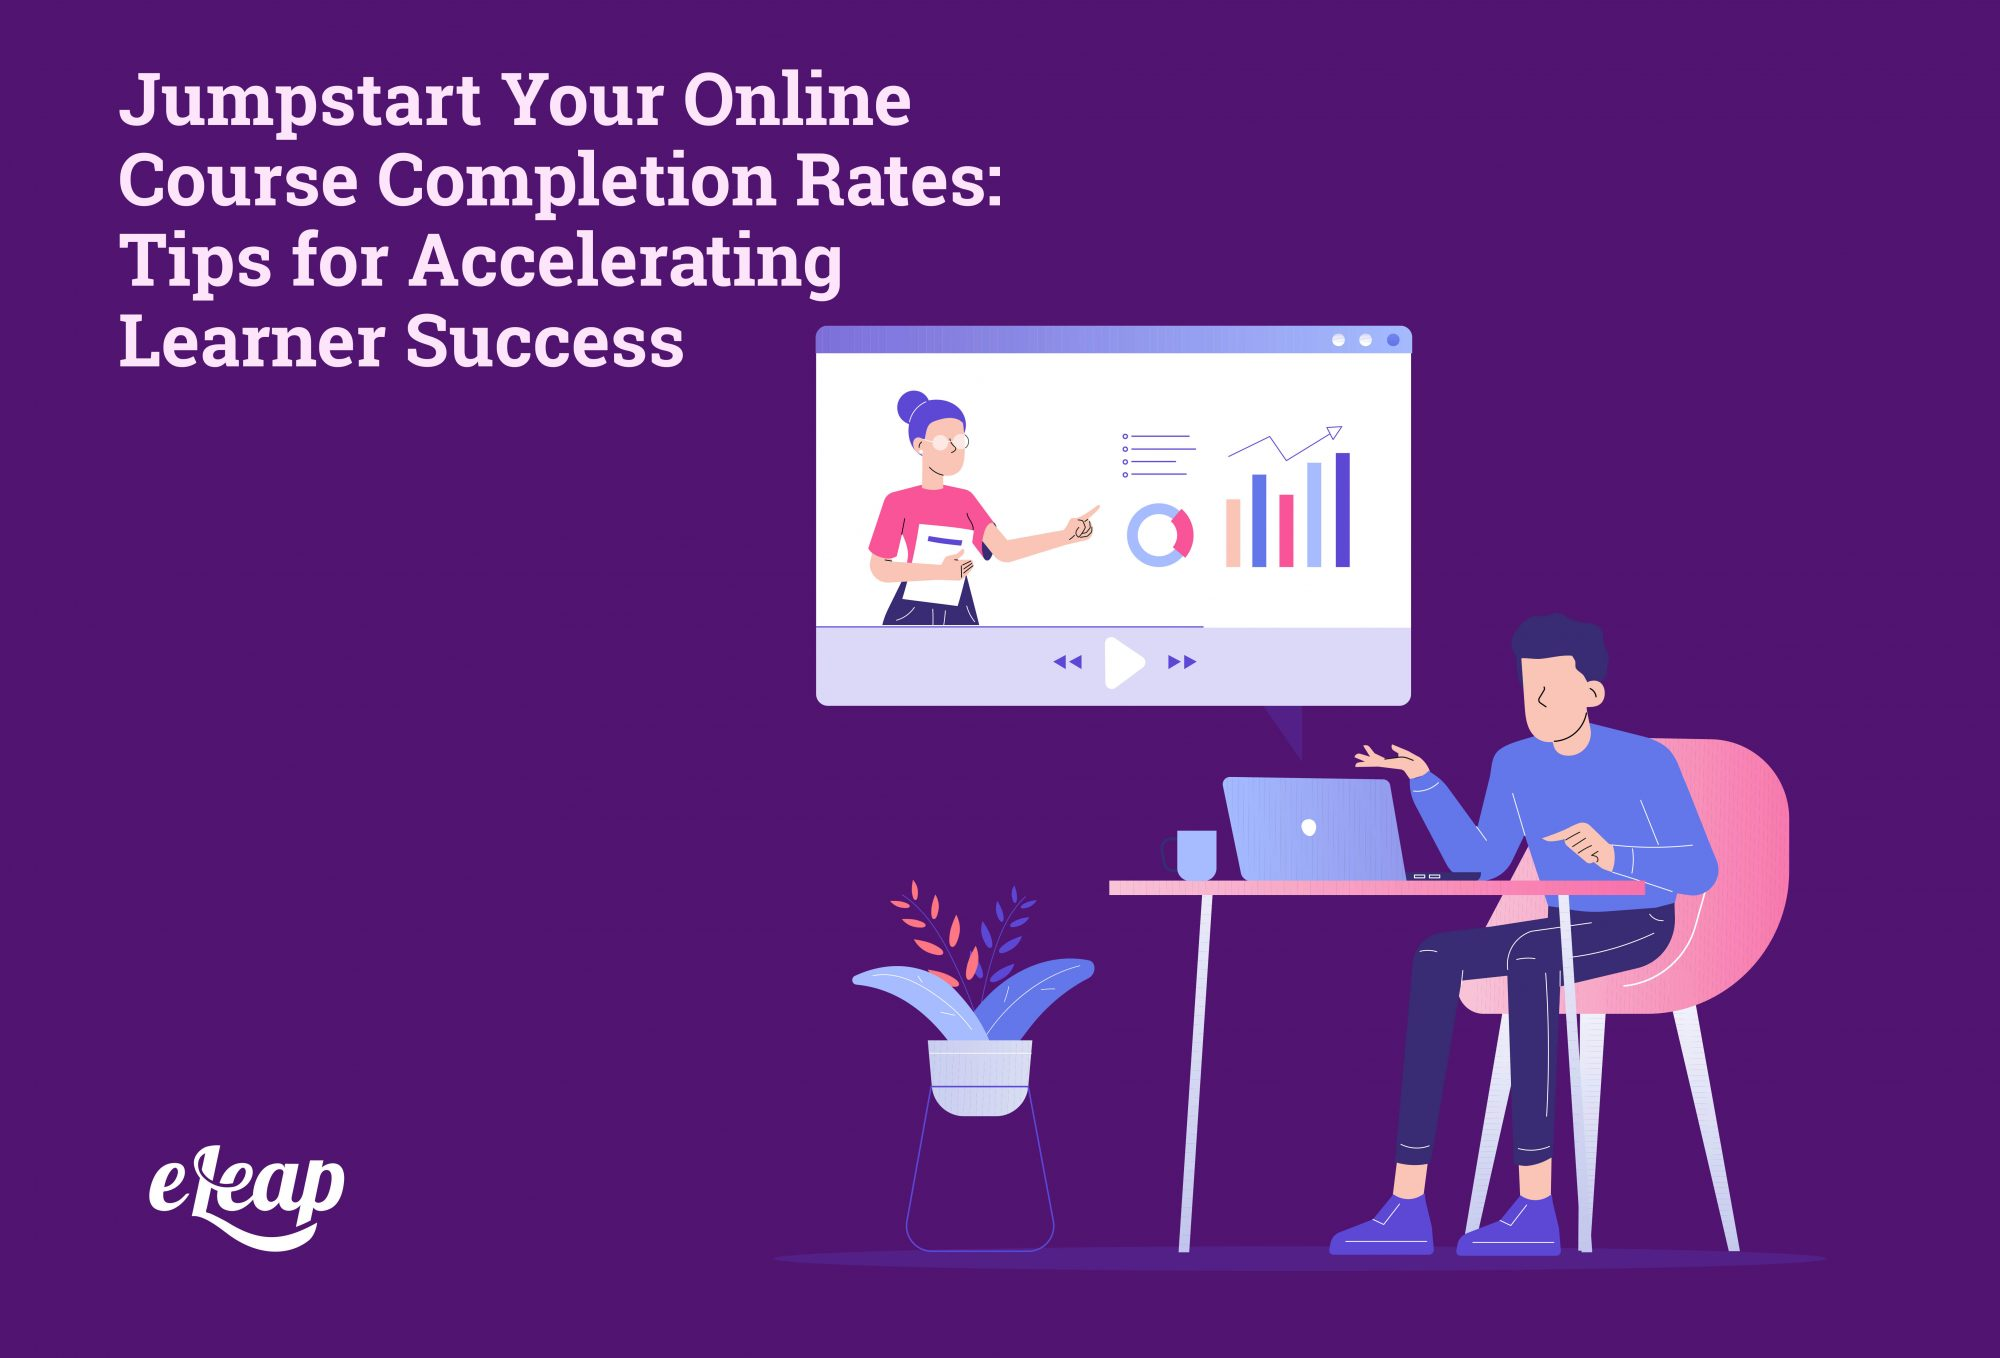 Jumpstart Your Online Course Completion Rates: Tips for Accelerating Learner Success